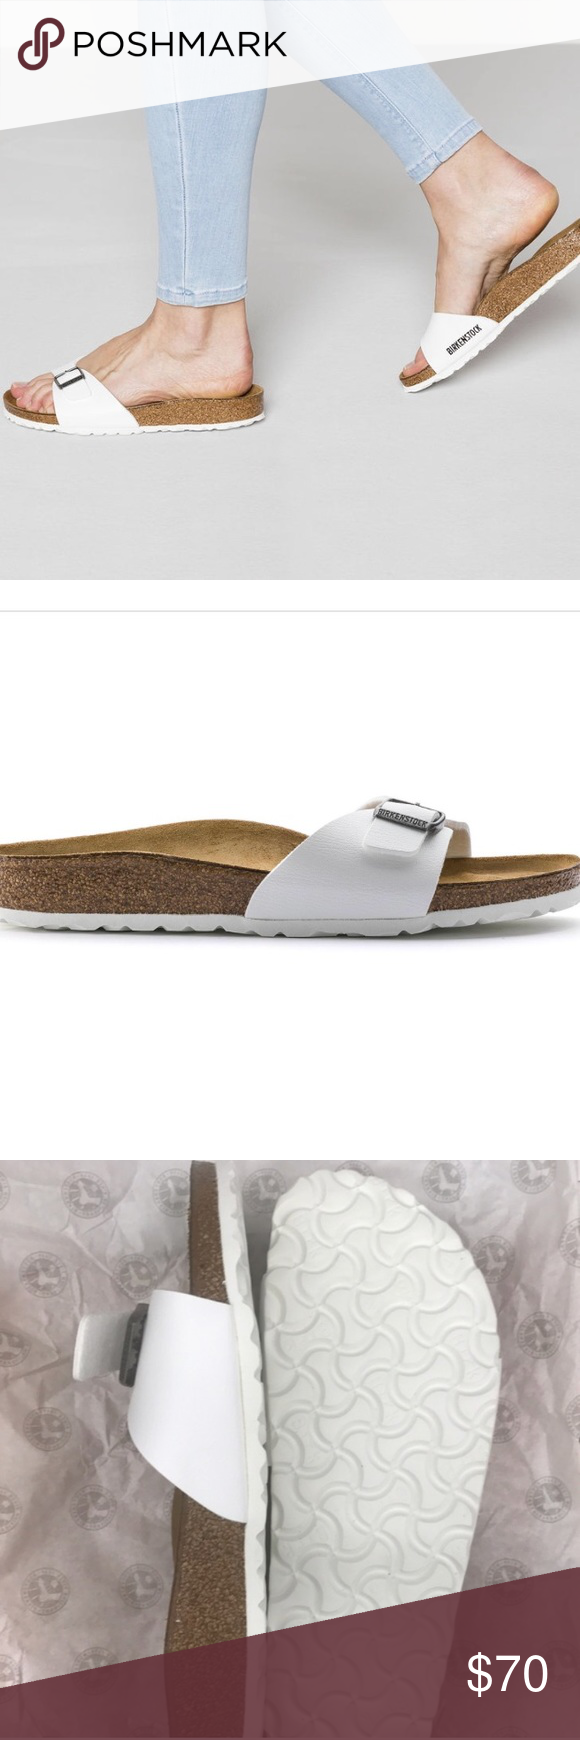 a9ecbba1a67 Birkenstock Madrid Birko Flor White Size euro 40   women s 9-9.5 narrow fit.  New with box. Birkenstock Shoes Sandals